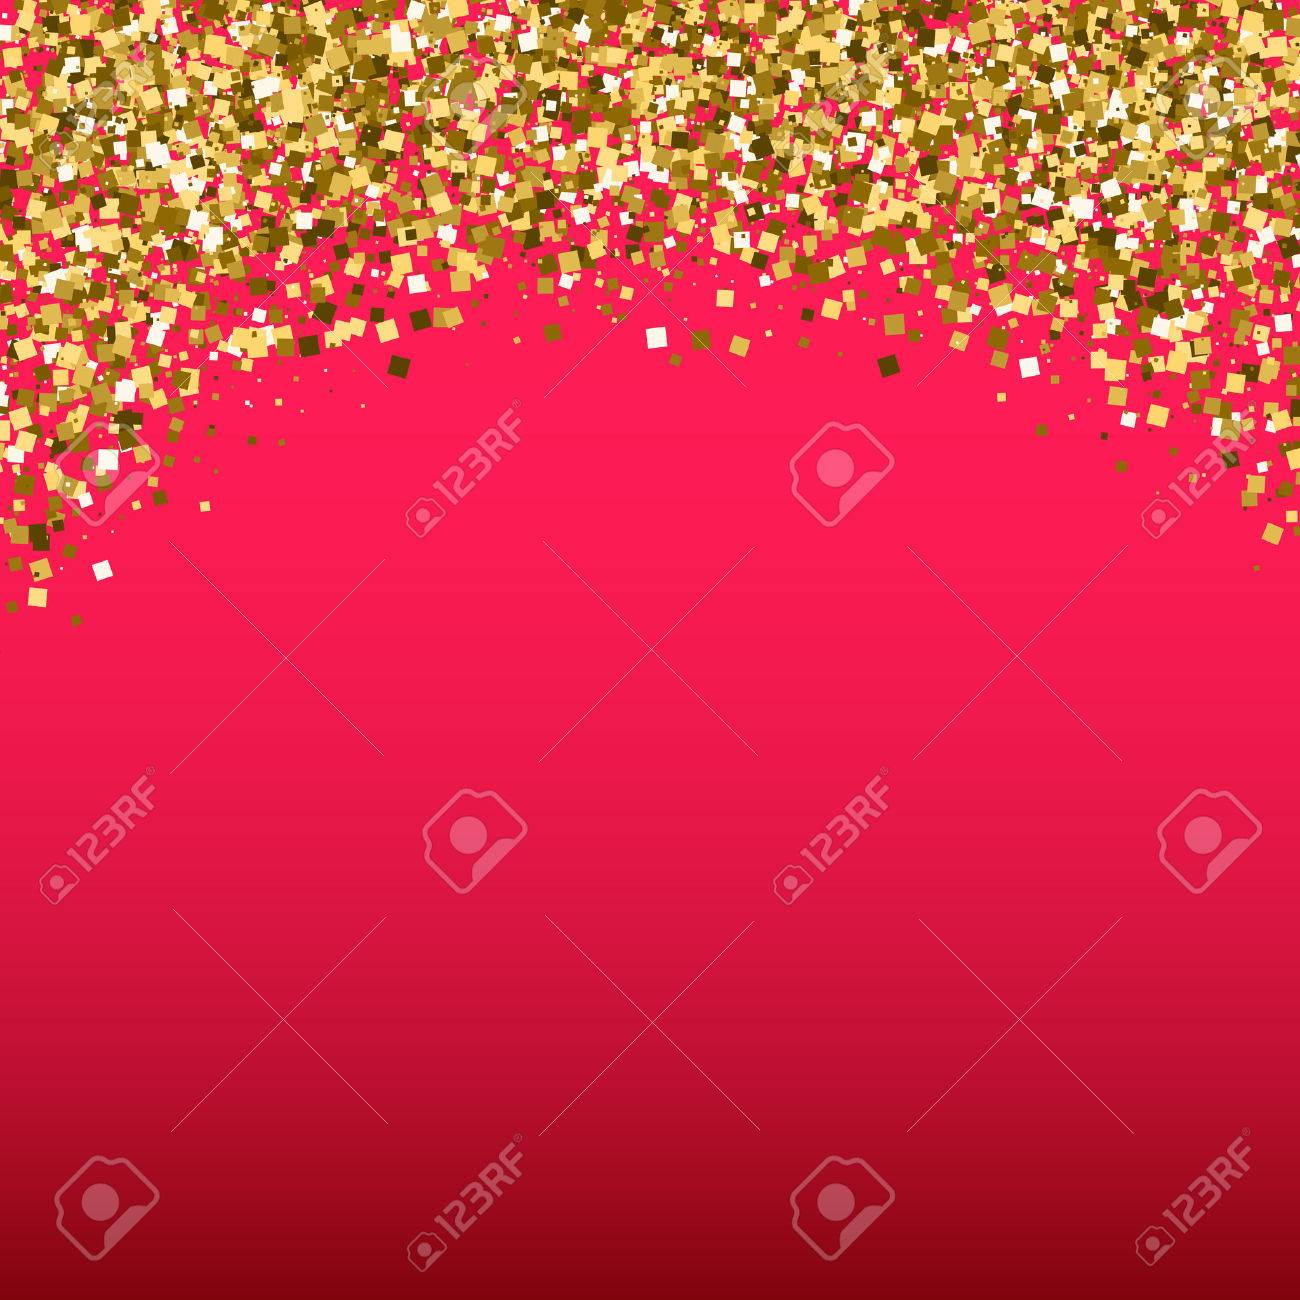 Gold Glitter Shimmery Heading Invitation Card Or Flyer With